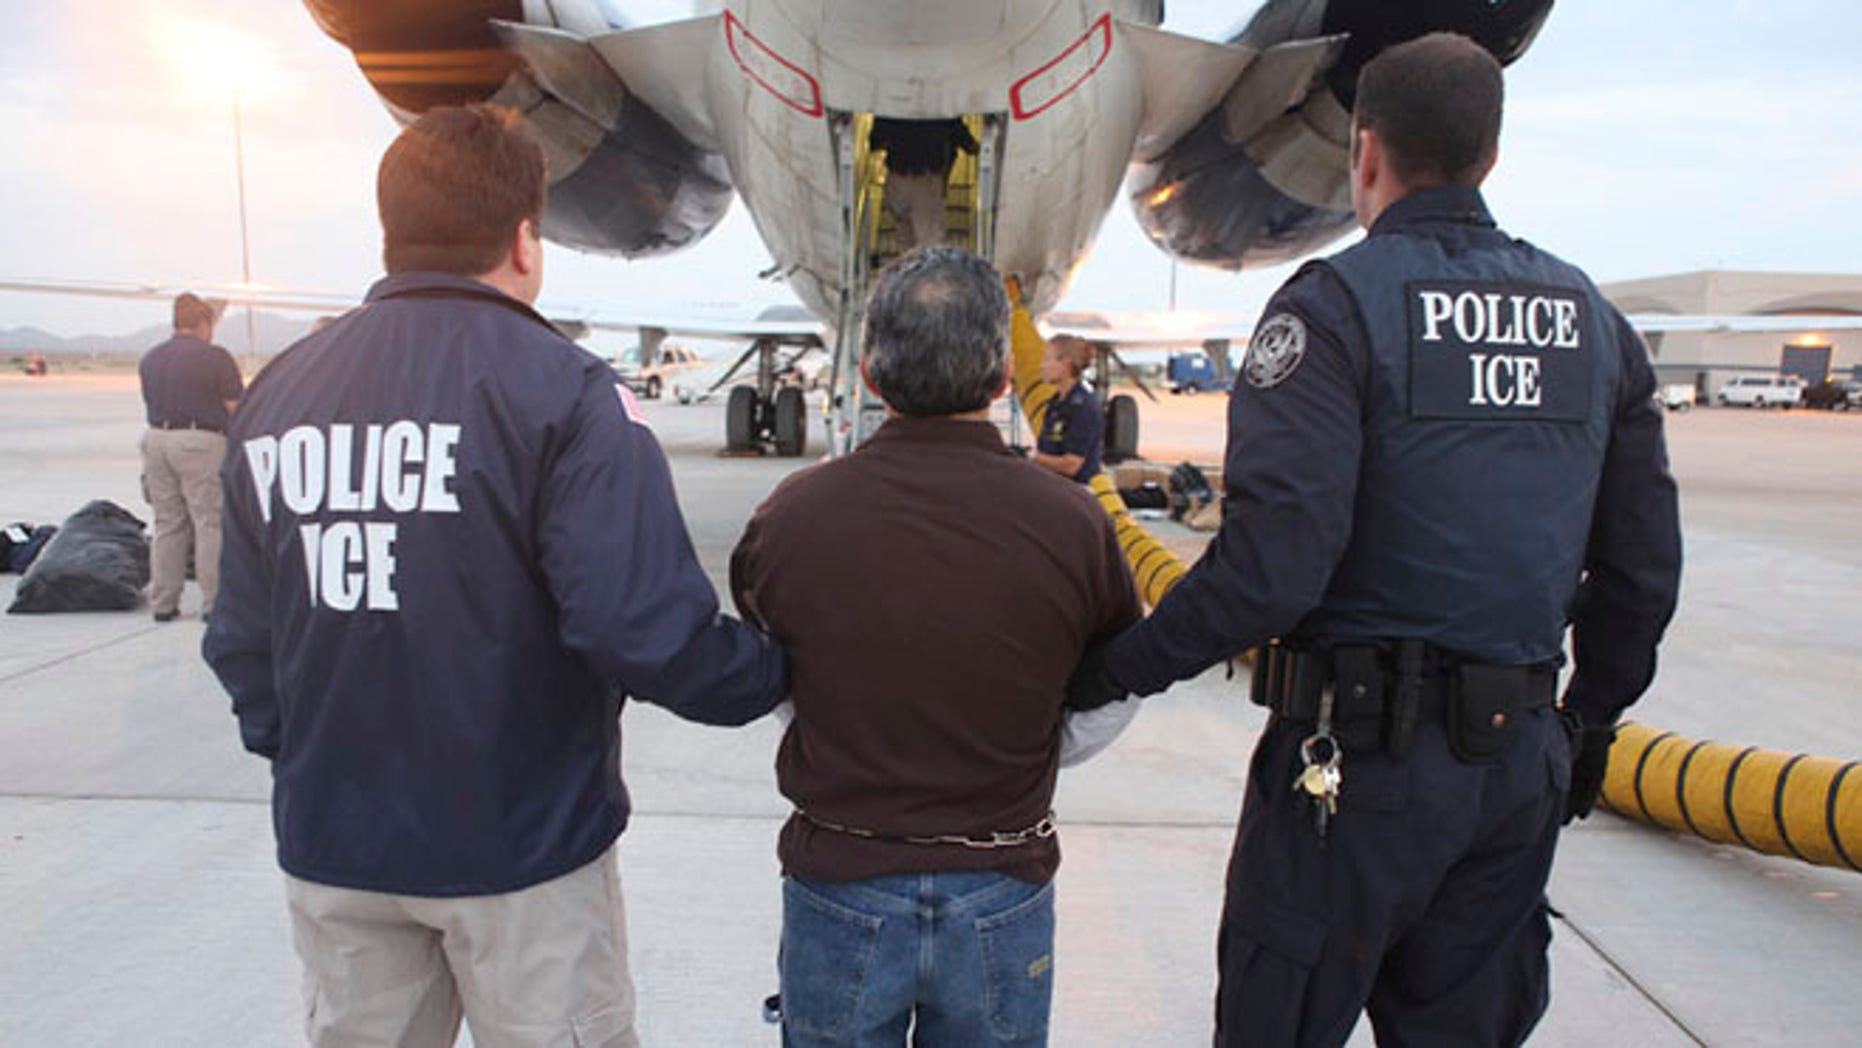 In this July 12, 2011 file photo, an illegal immigrant is transferred to an awaiting plane bound for Guatemala by U.S. Immigration and Customs Enforcement (ICE) officials in Mesa, Ariz.